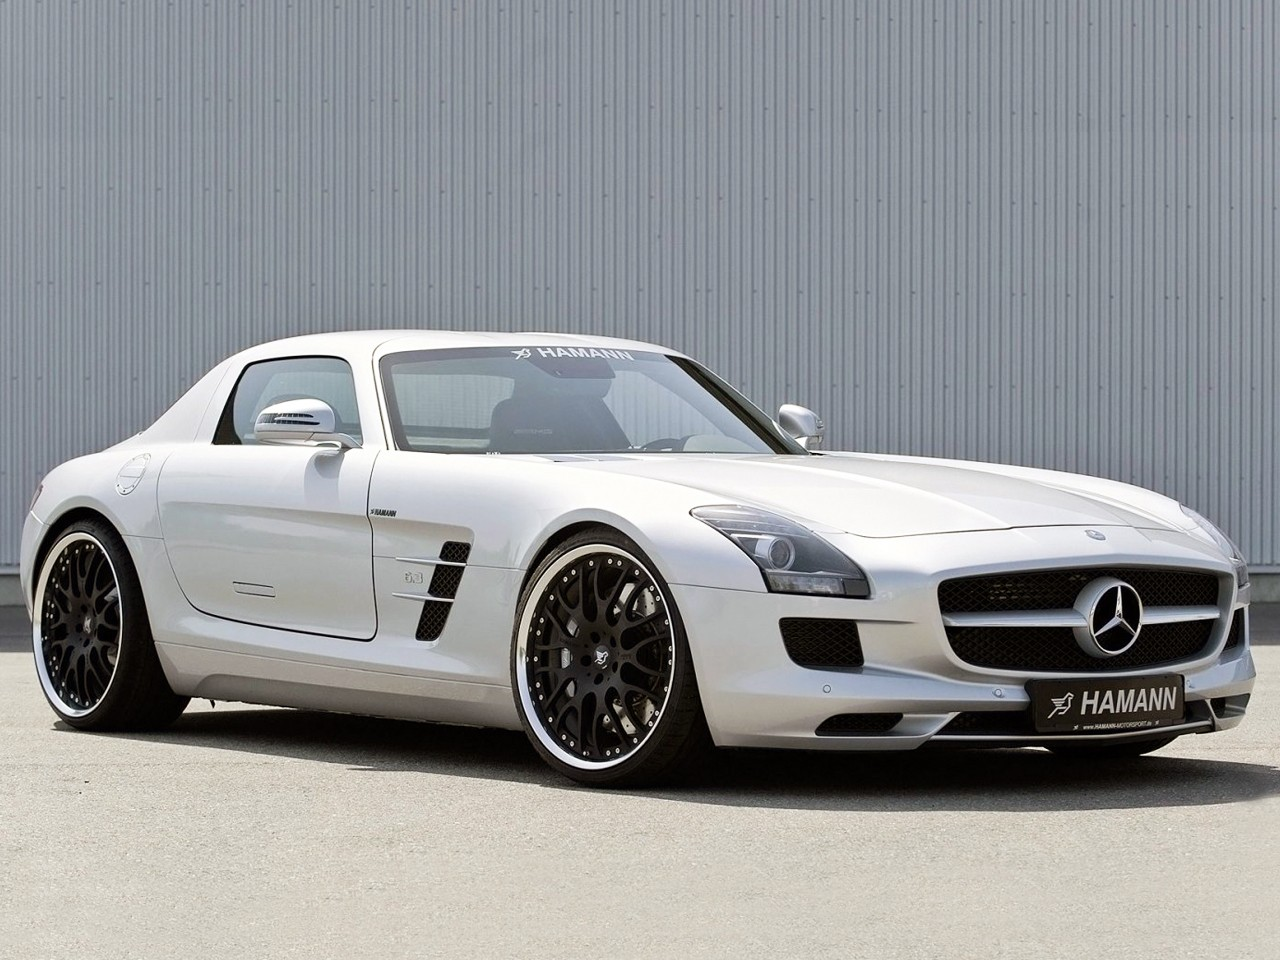 Benz amg benz sls amg toupeenseen for Mercedes benz sls amg convertible for sale